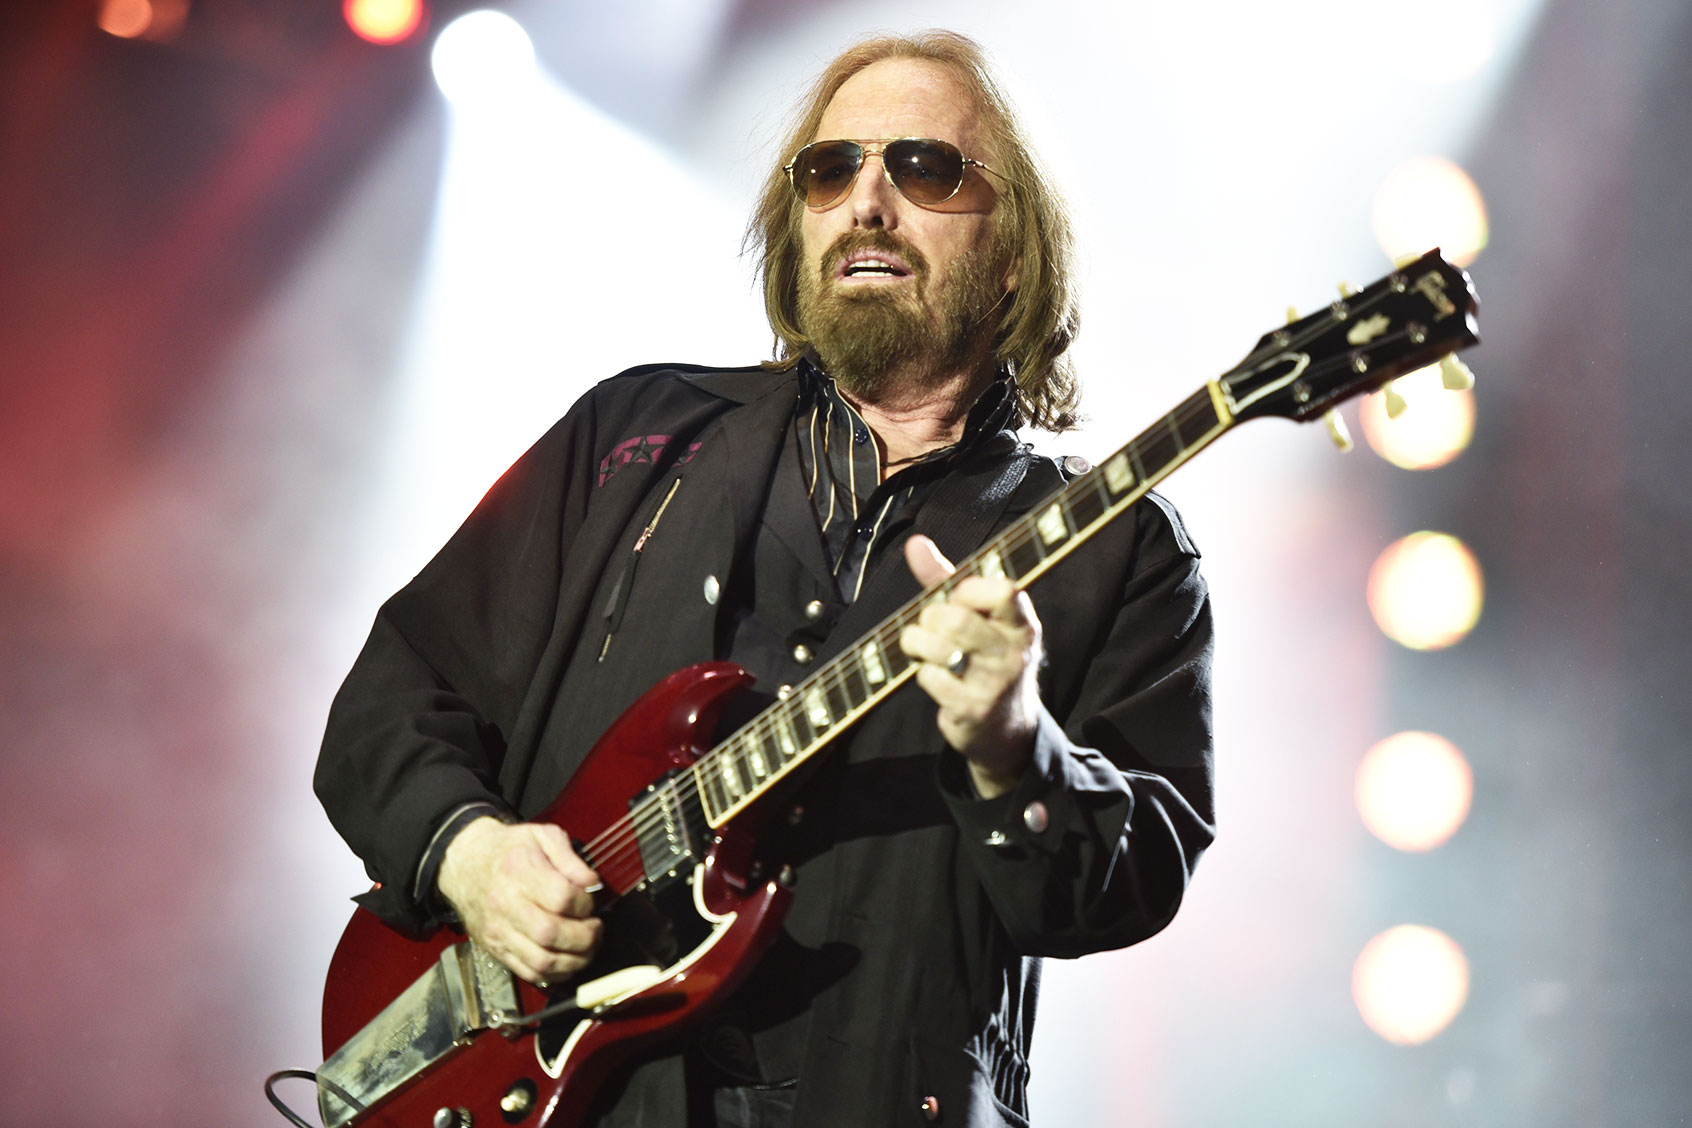 tom petty pointless road - HD1692×1128